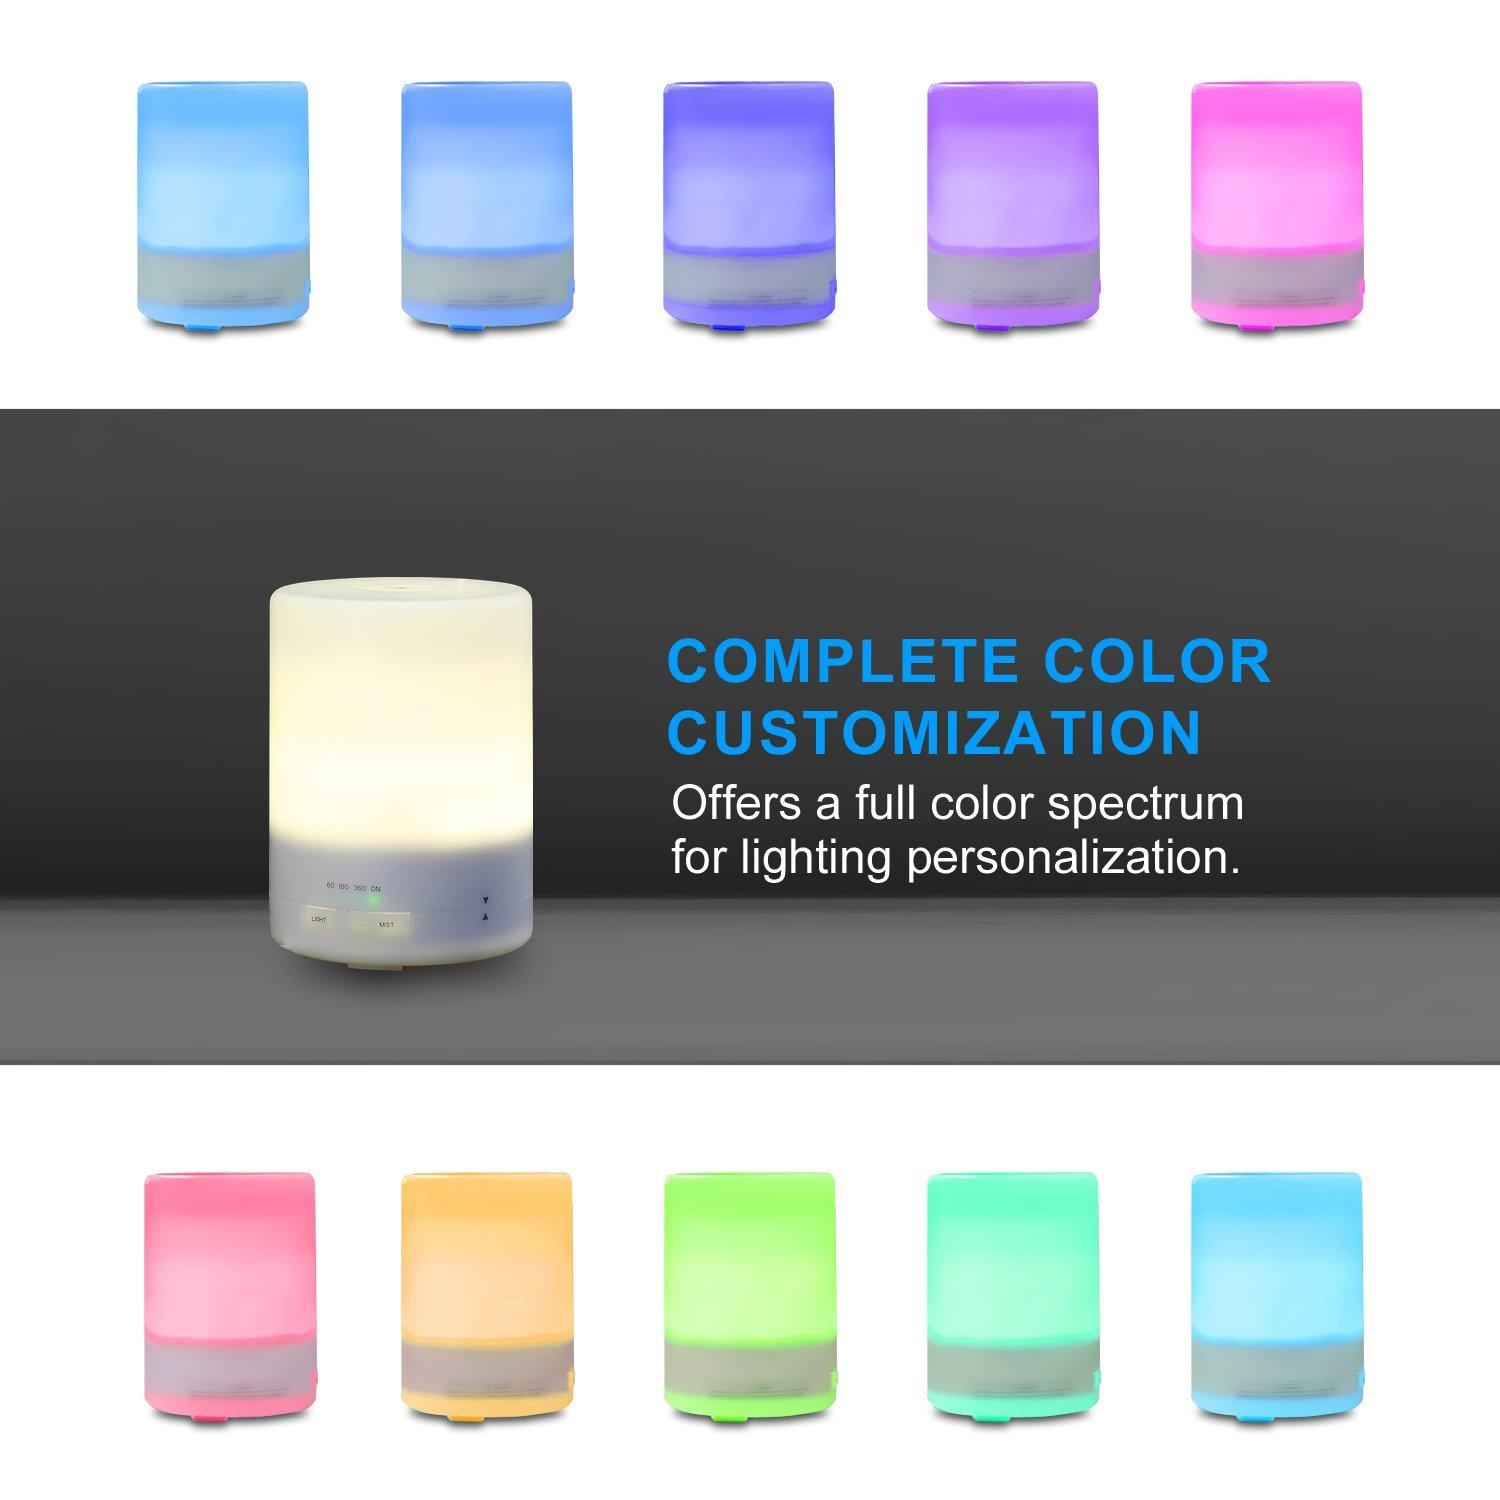 Etekcity 300ml Ultrasonic Aromatherapy Essential Oil Diffuser with Cool Aroma Mist